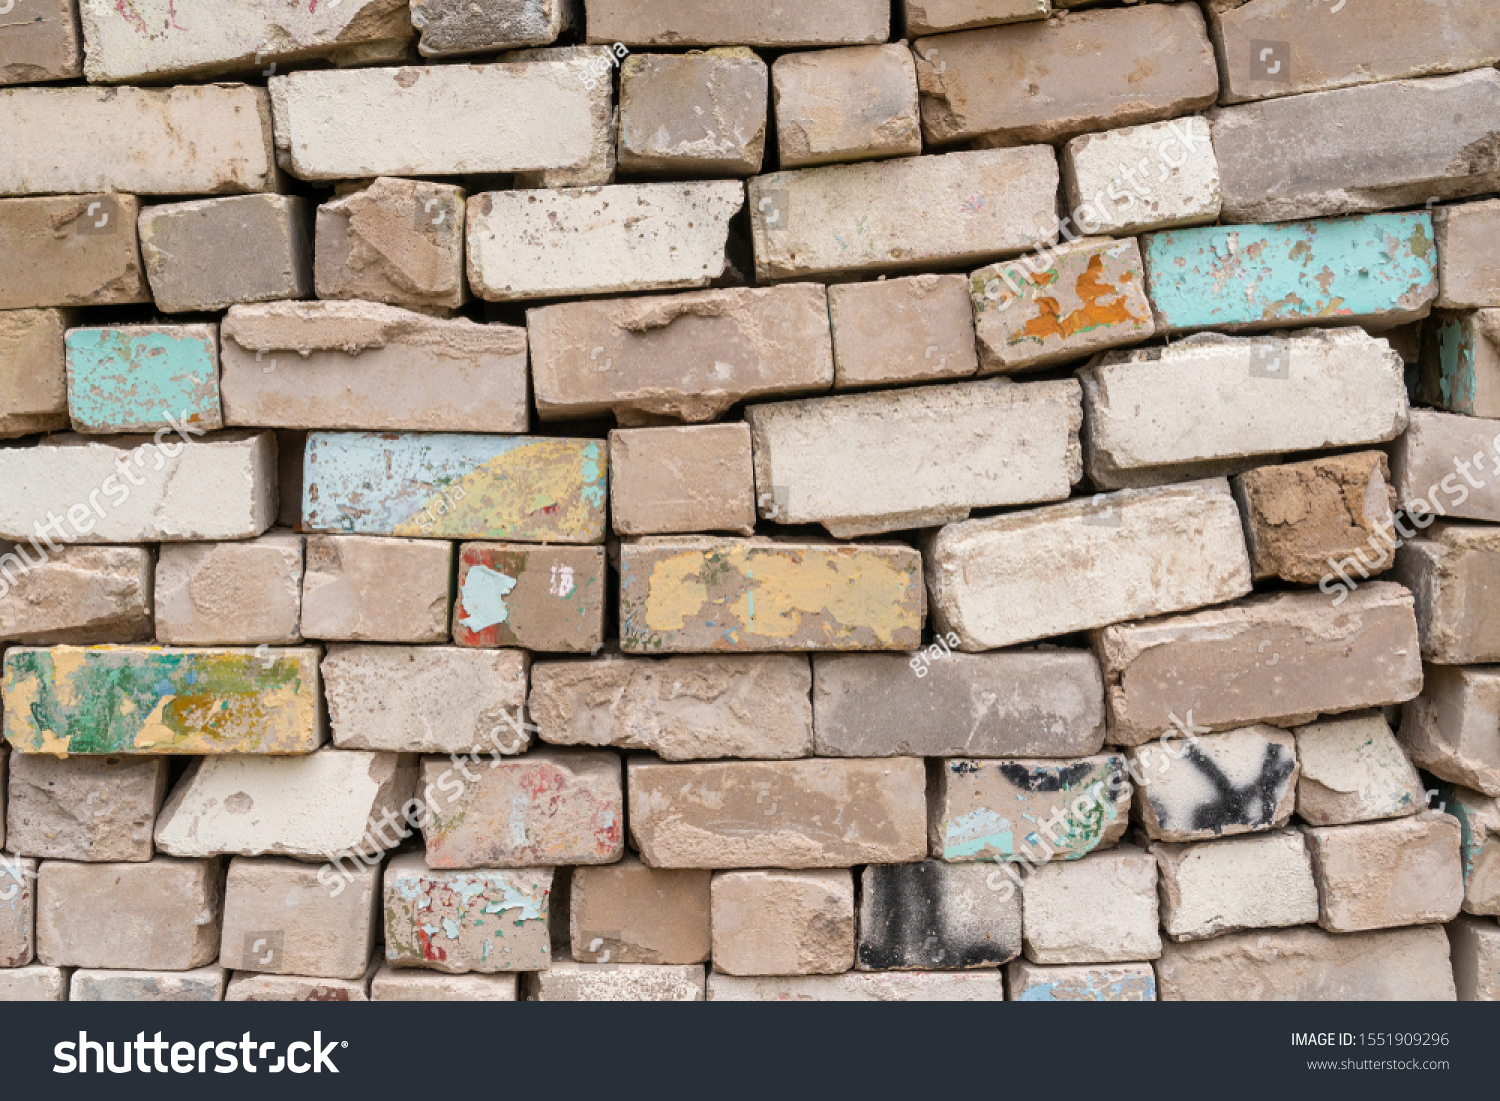 Bricks pile close up view. Old Bricks Texture.  Construction industry raw materials. Building materials.  #1551909296